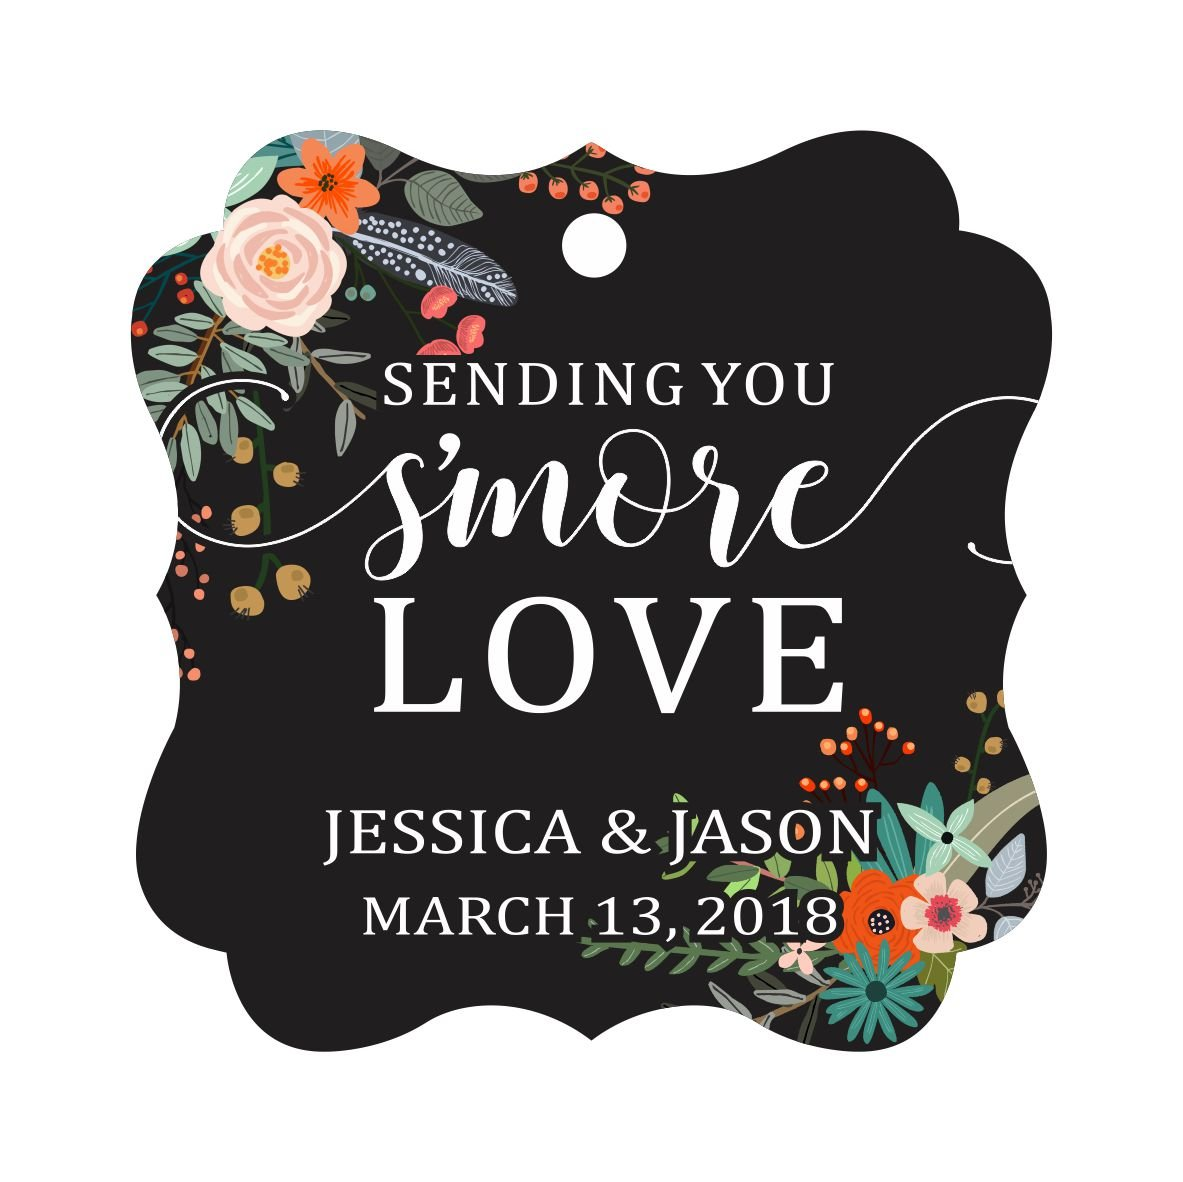 Darling Souvenir Custom Hang Tags Sending You S'More Love Favor Gift Tags Personalized Fancy Bonbonniere Tag-Floral Black-100 Tags